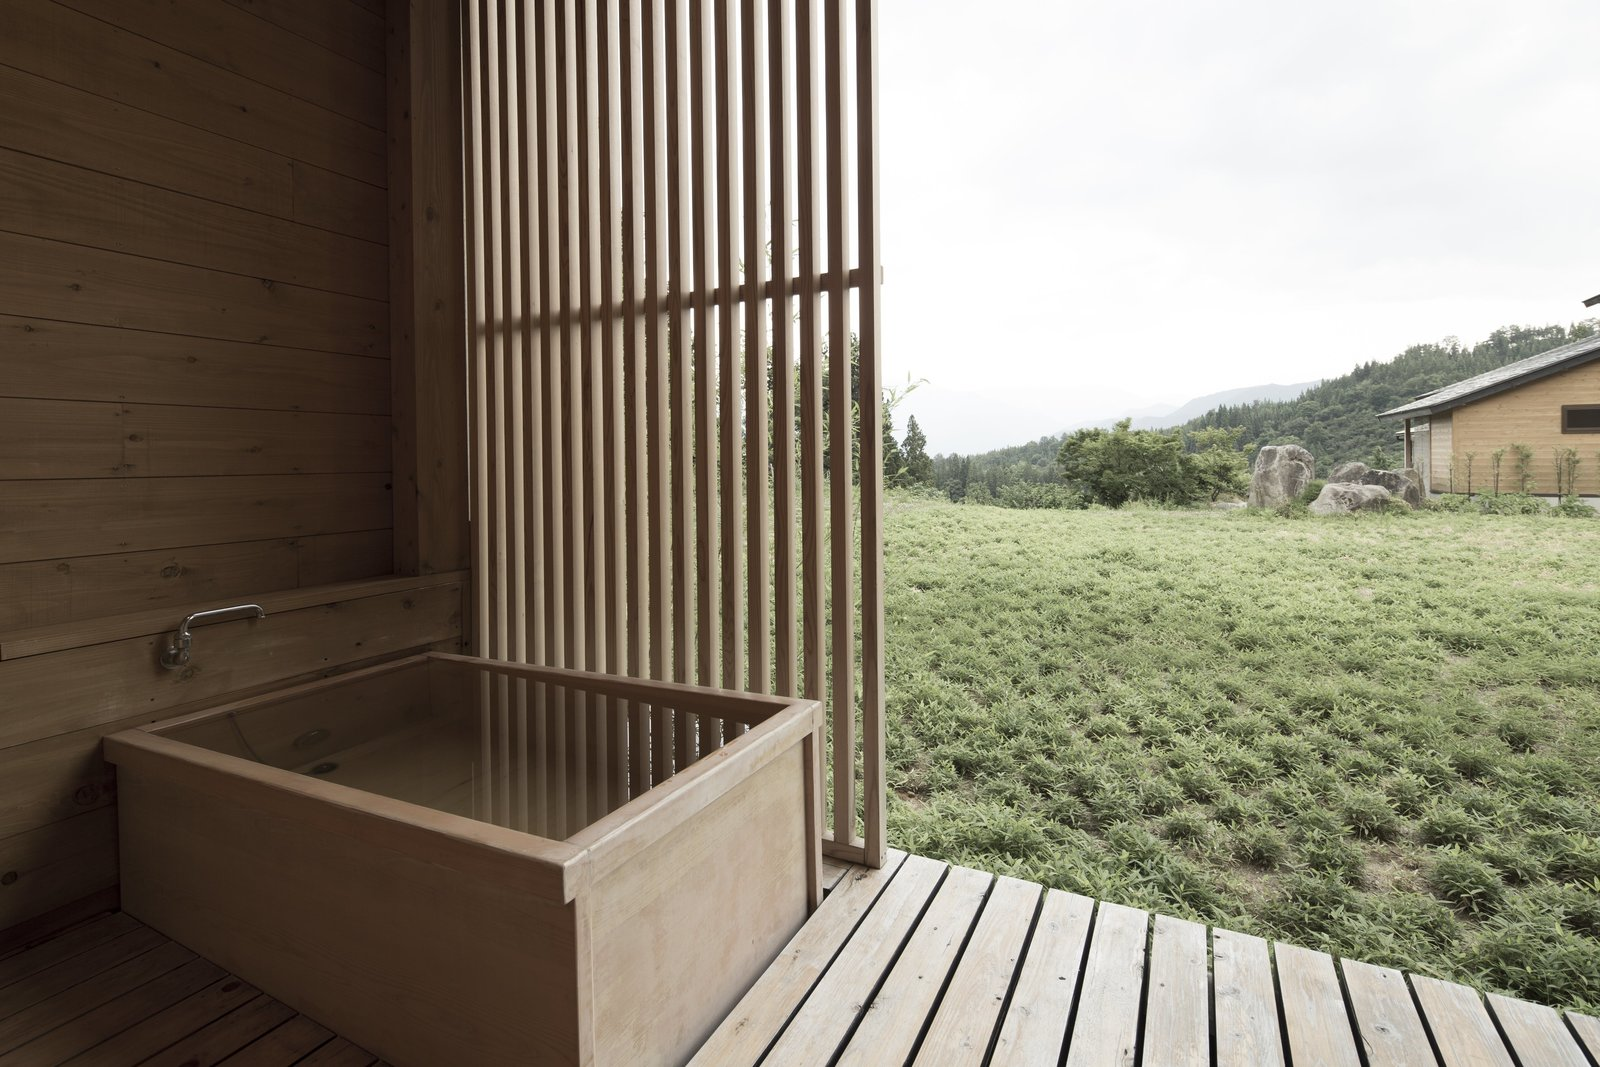 Just a short two hour high-speed train ride from Tokyo will take you to Minami-Uonuma, in the region of Niigata. Tagged: Bath Room, Medium Hardwood Floor, and Freestanding Tub.  inspo from Hide Out in One of These Asian Retreats That Are Immersed in Nature